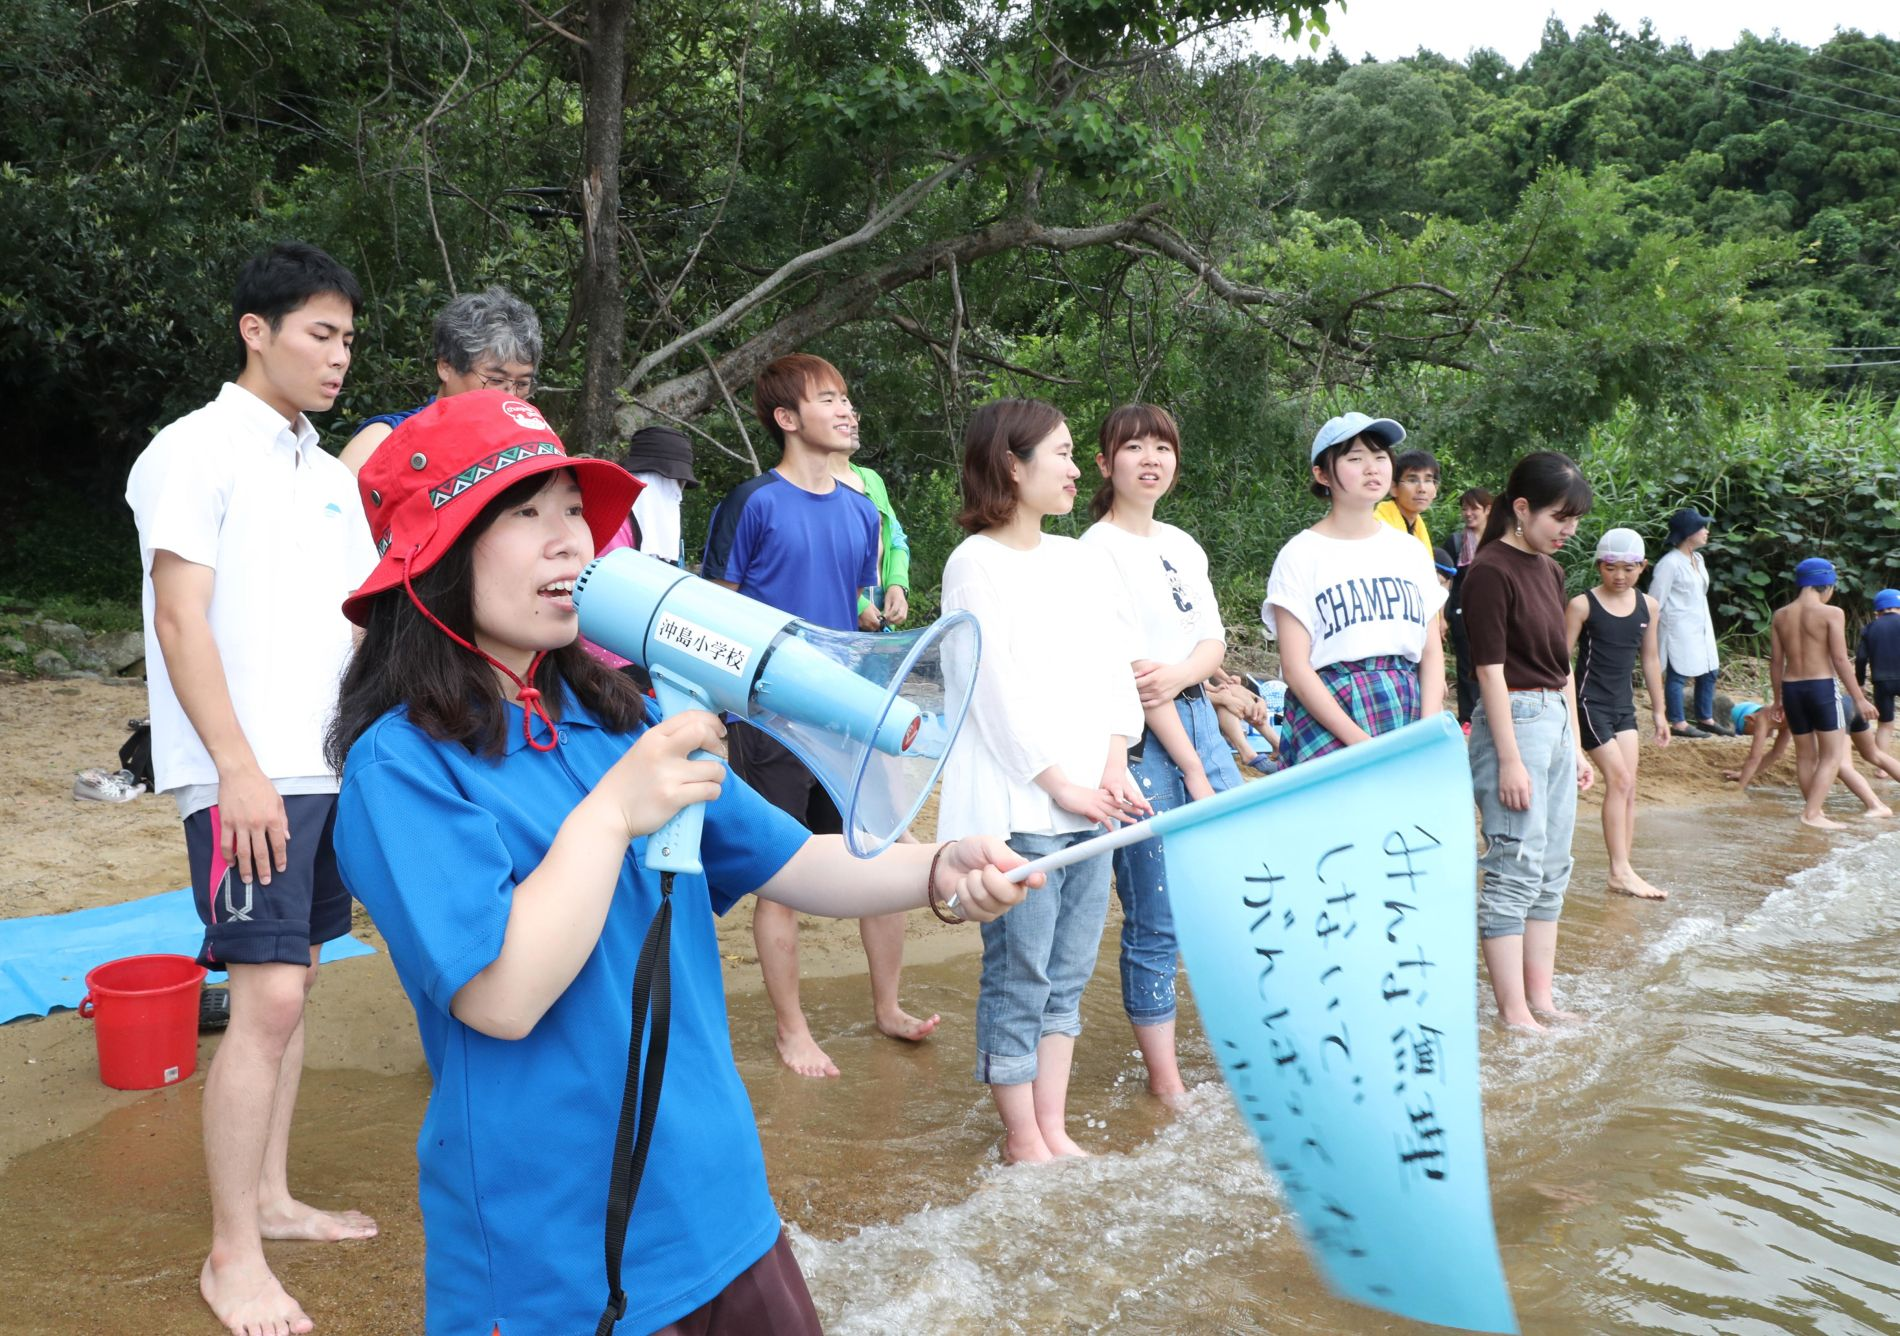 Summer on Okishima A Taste of Tradition with Island Fish 003